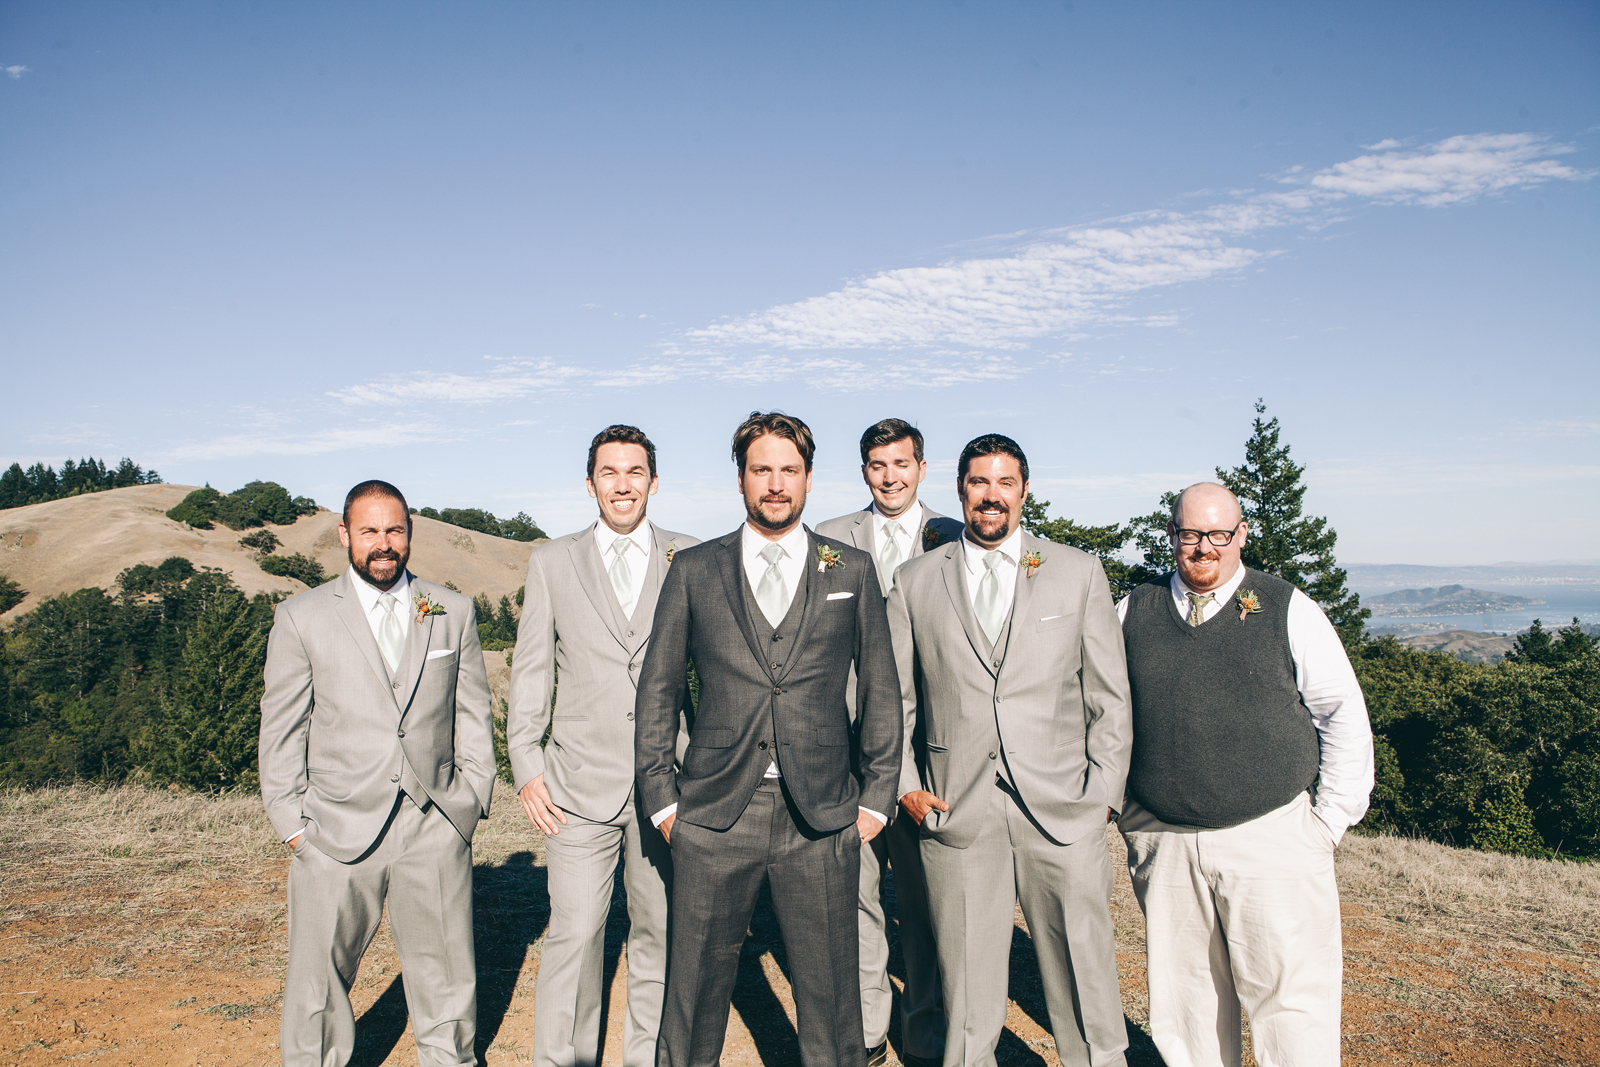 mt_tam_wedding_photography_marin_zac_katie_ebony_siovhan_bokeh_photography_33.jpg